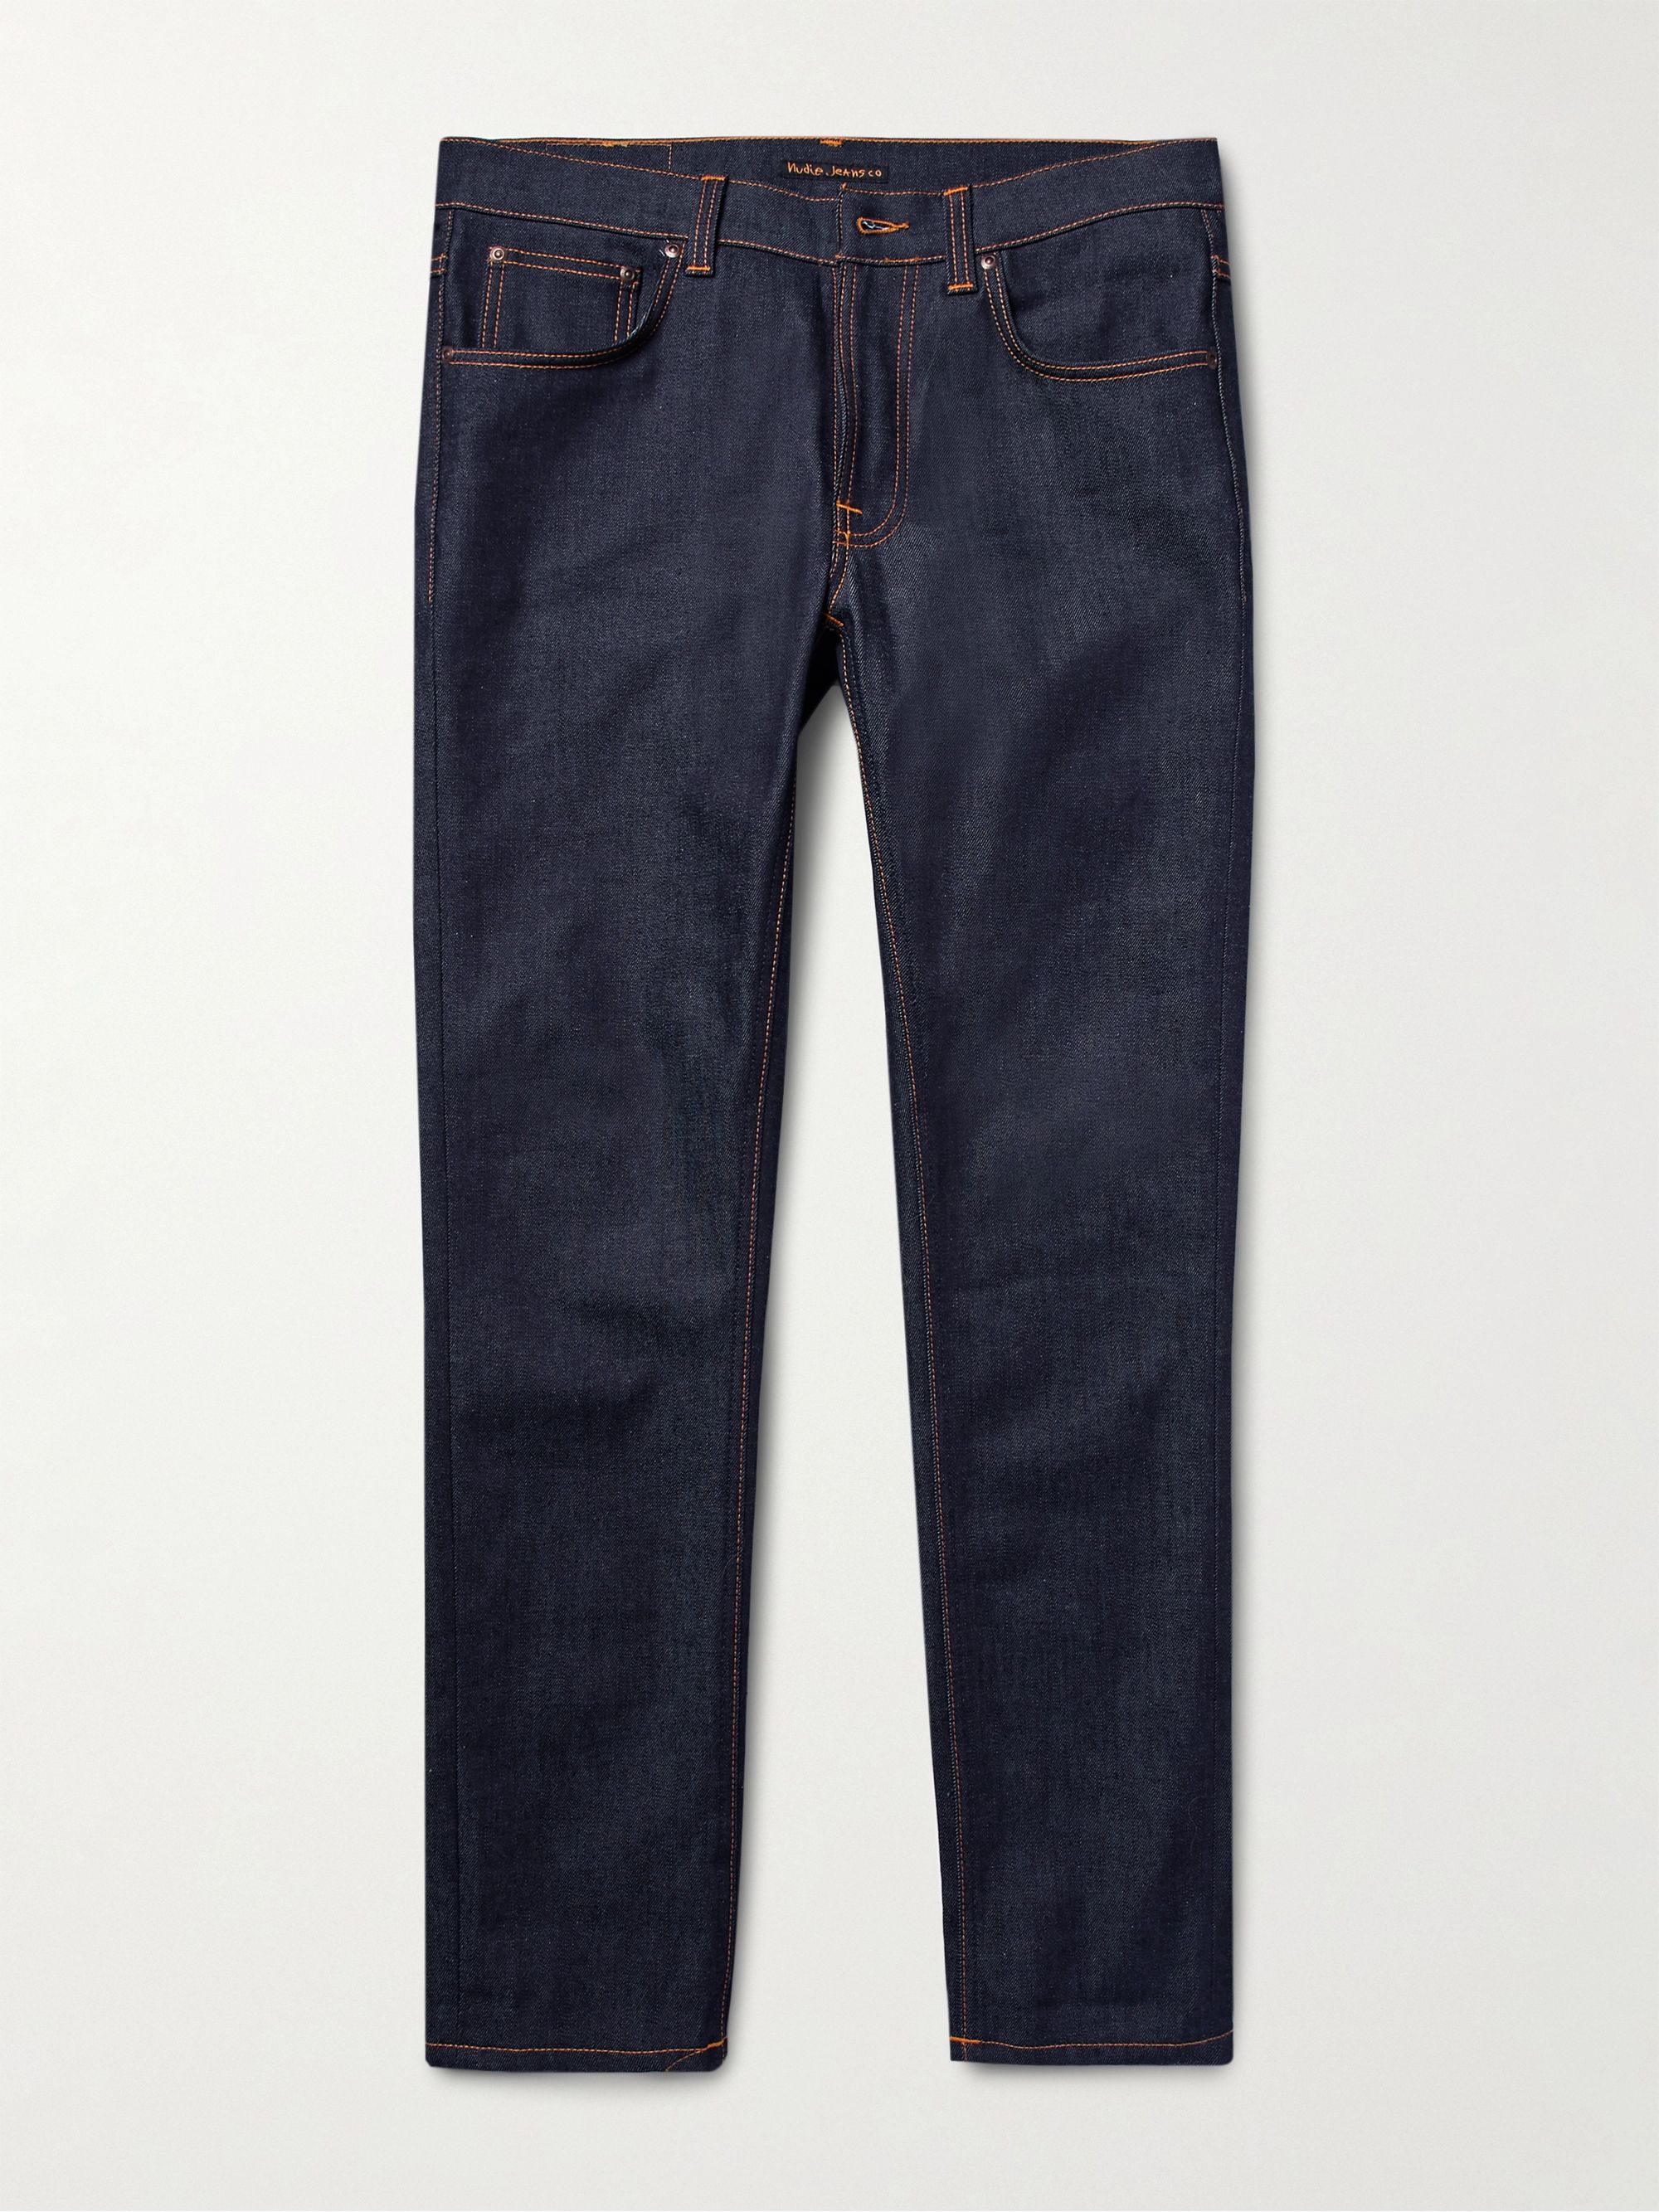 Nudie Jeans Lean Dean Slim-Fit Dry Organic Denim Jeans